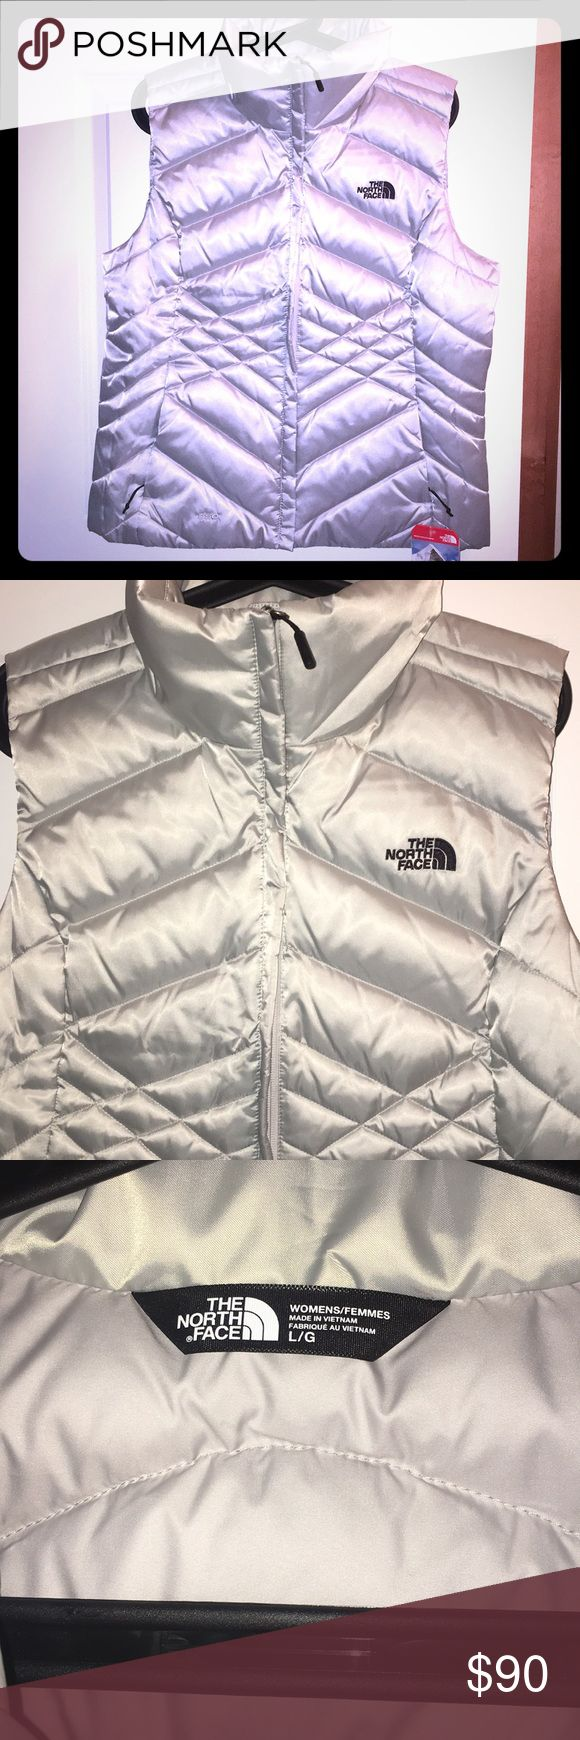 NWT. The North Face puffy vest. NWT. Lunar Ice Grey, The North Face vest. The North Face Jackets & Coats Vests